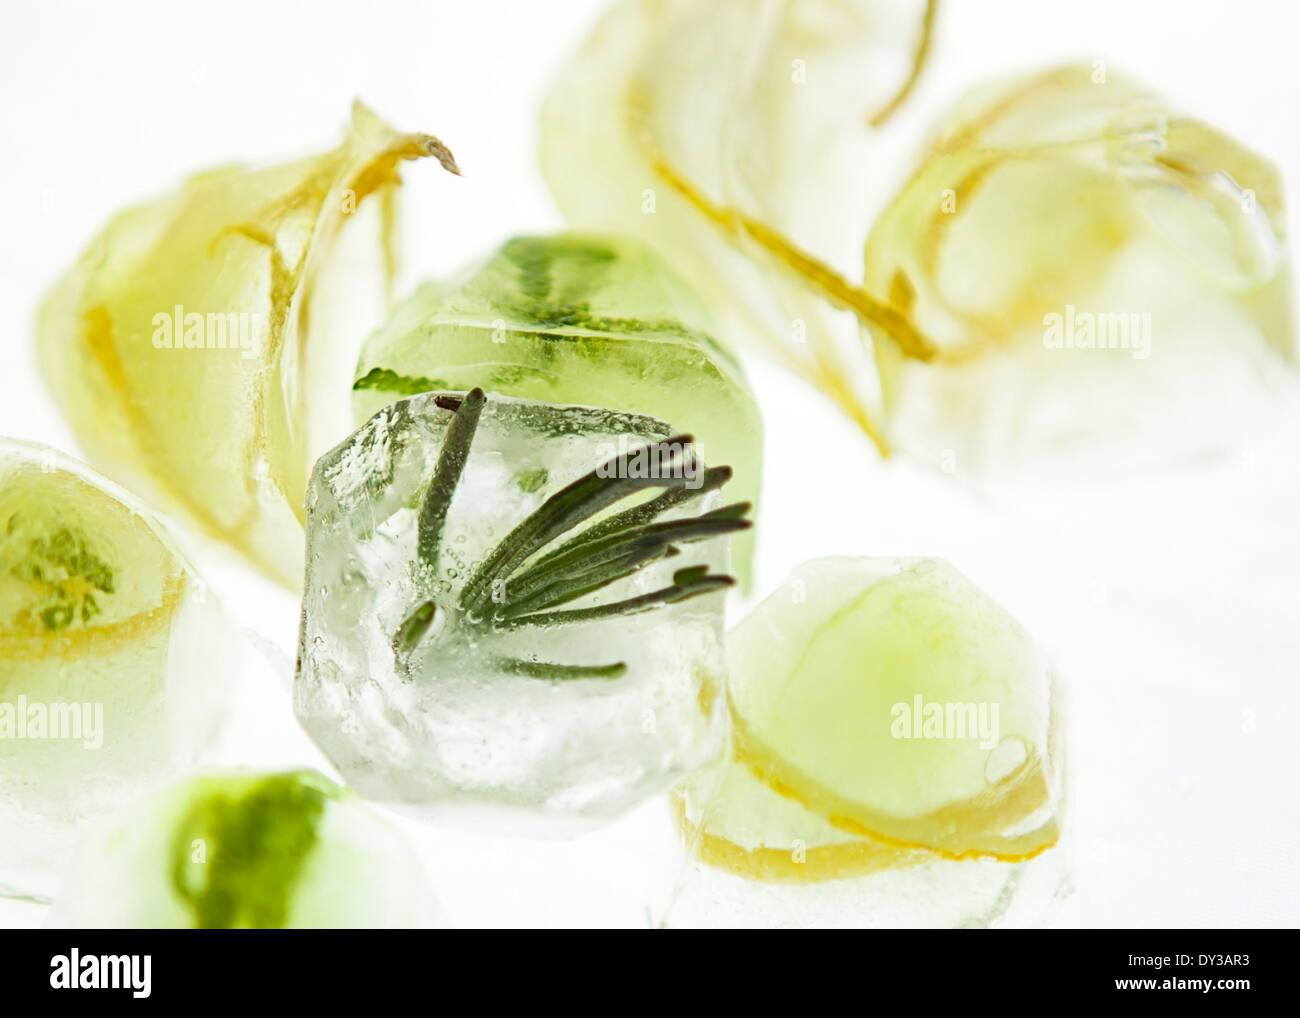 Citrus herb ice cubes on a high key backdrop Stock Photo